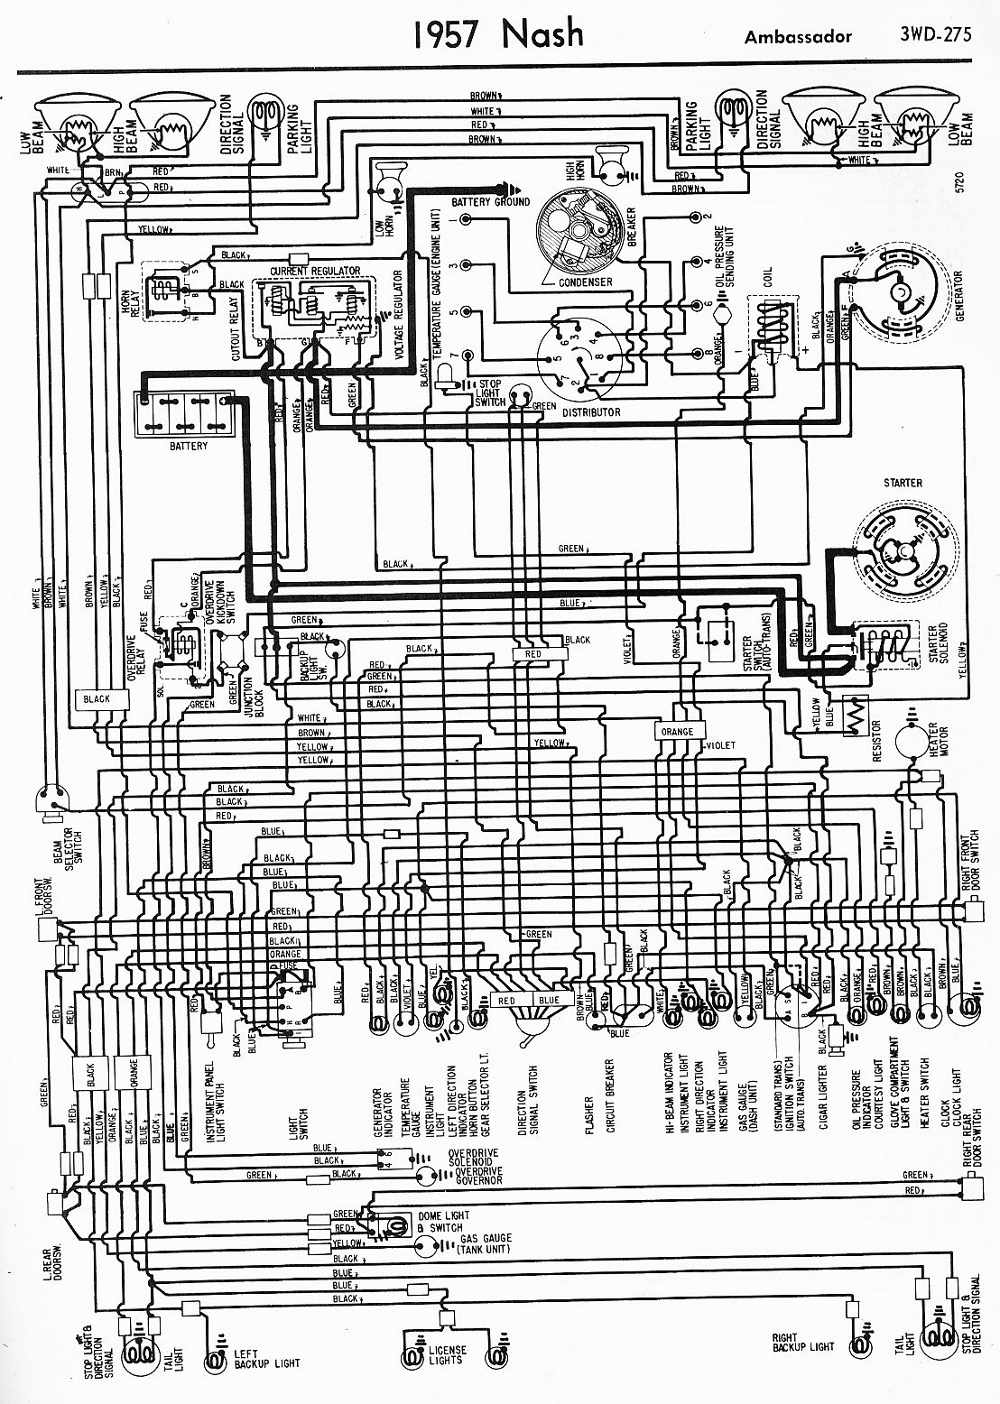 1949 Packard Wiring Diagram 1948 Willys Jeep 1950 Hudson